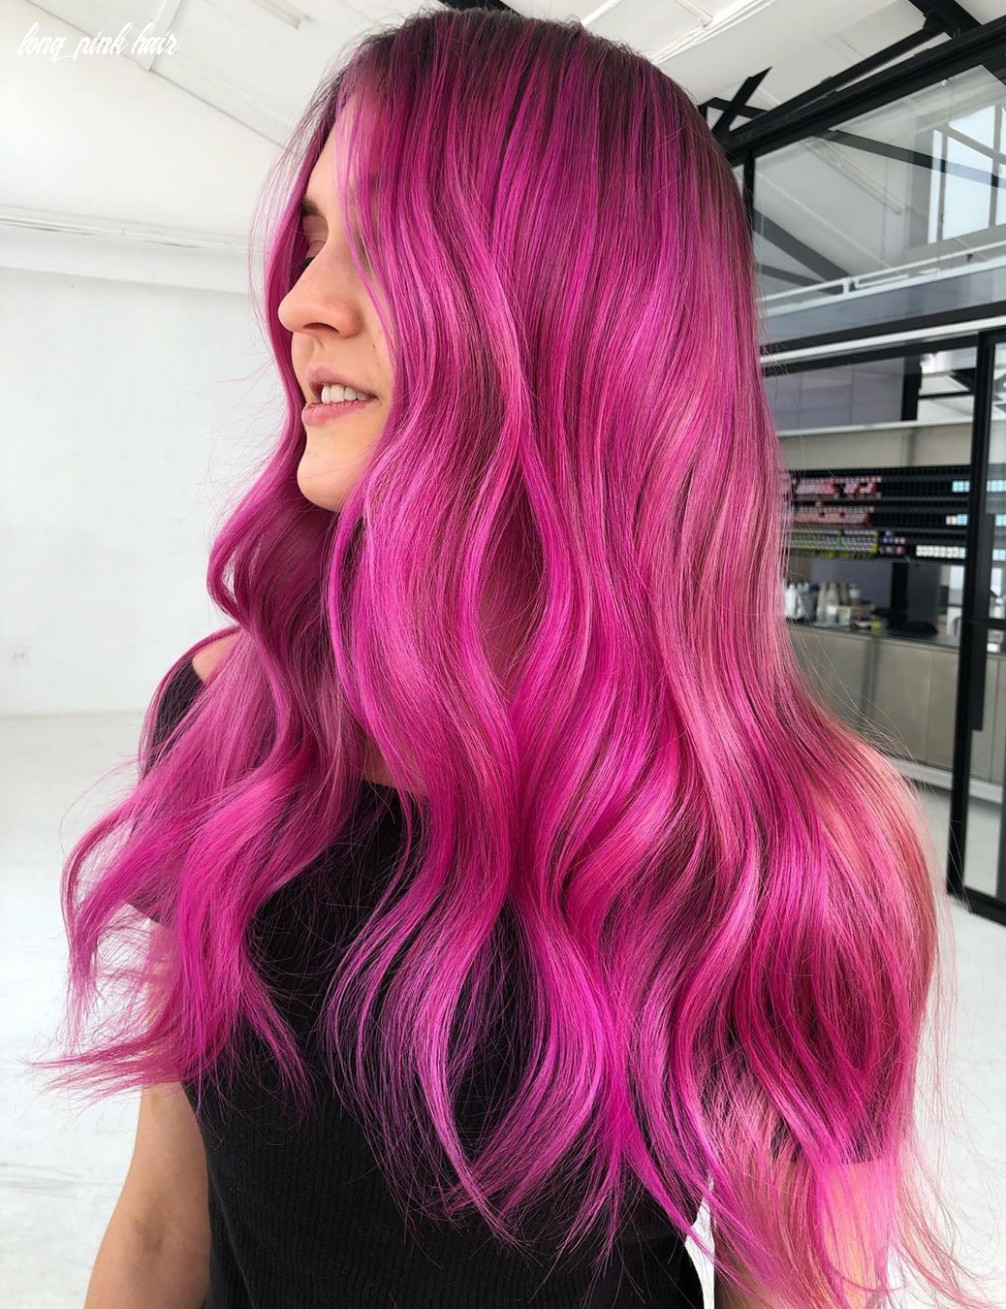 8 unbelievably cool pink hair color ideas for 8 hair adviser long pink hair